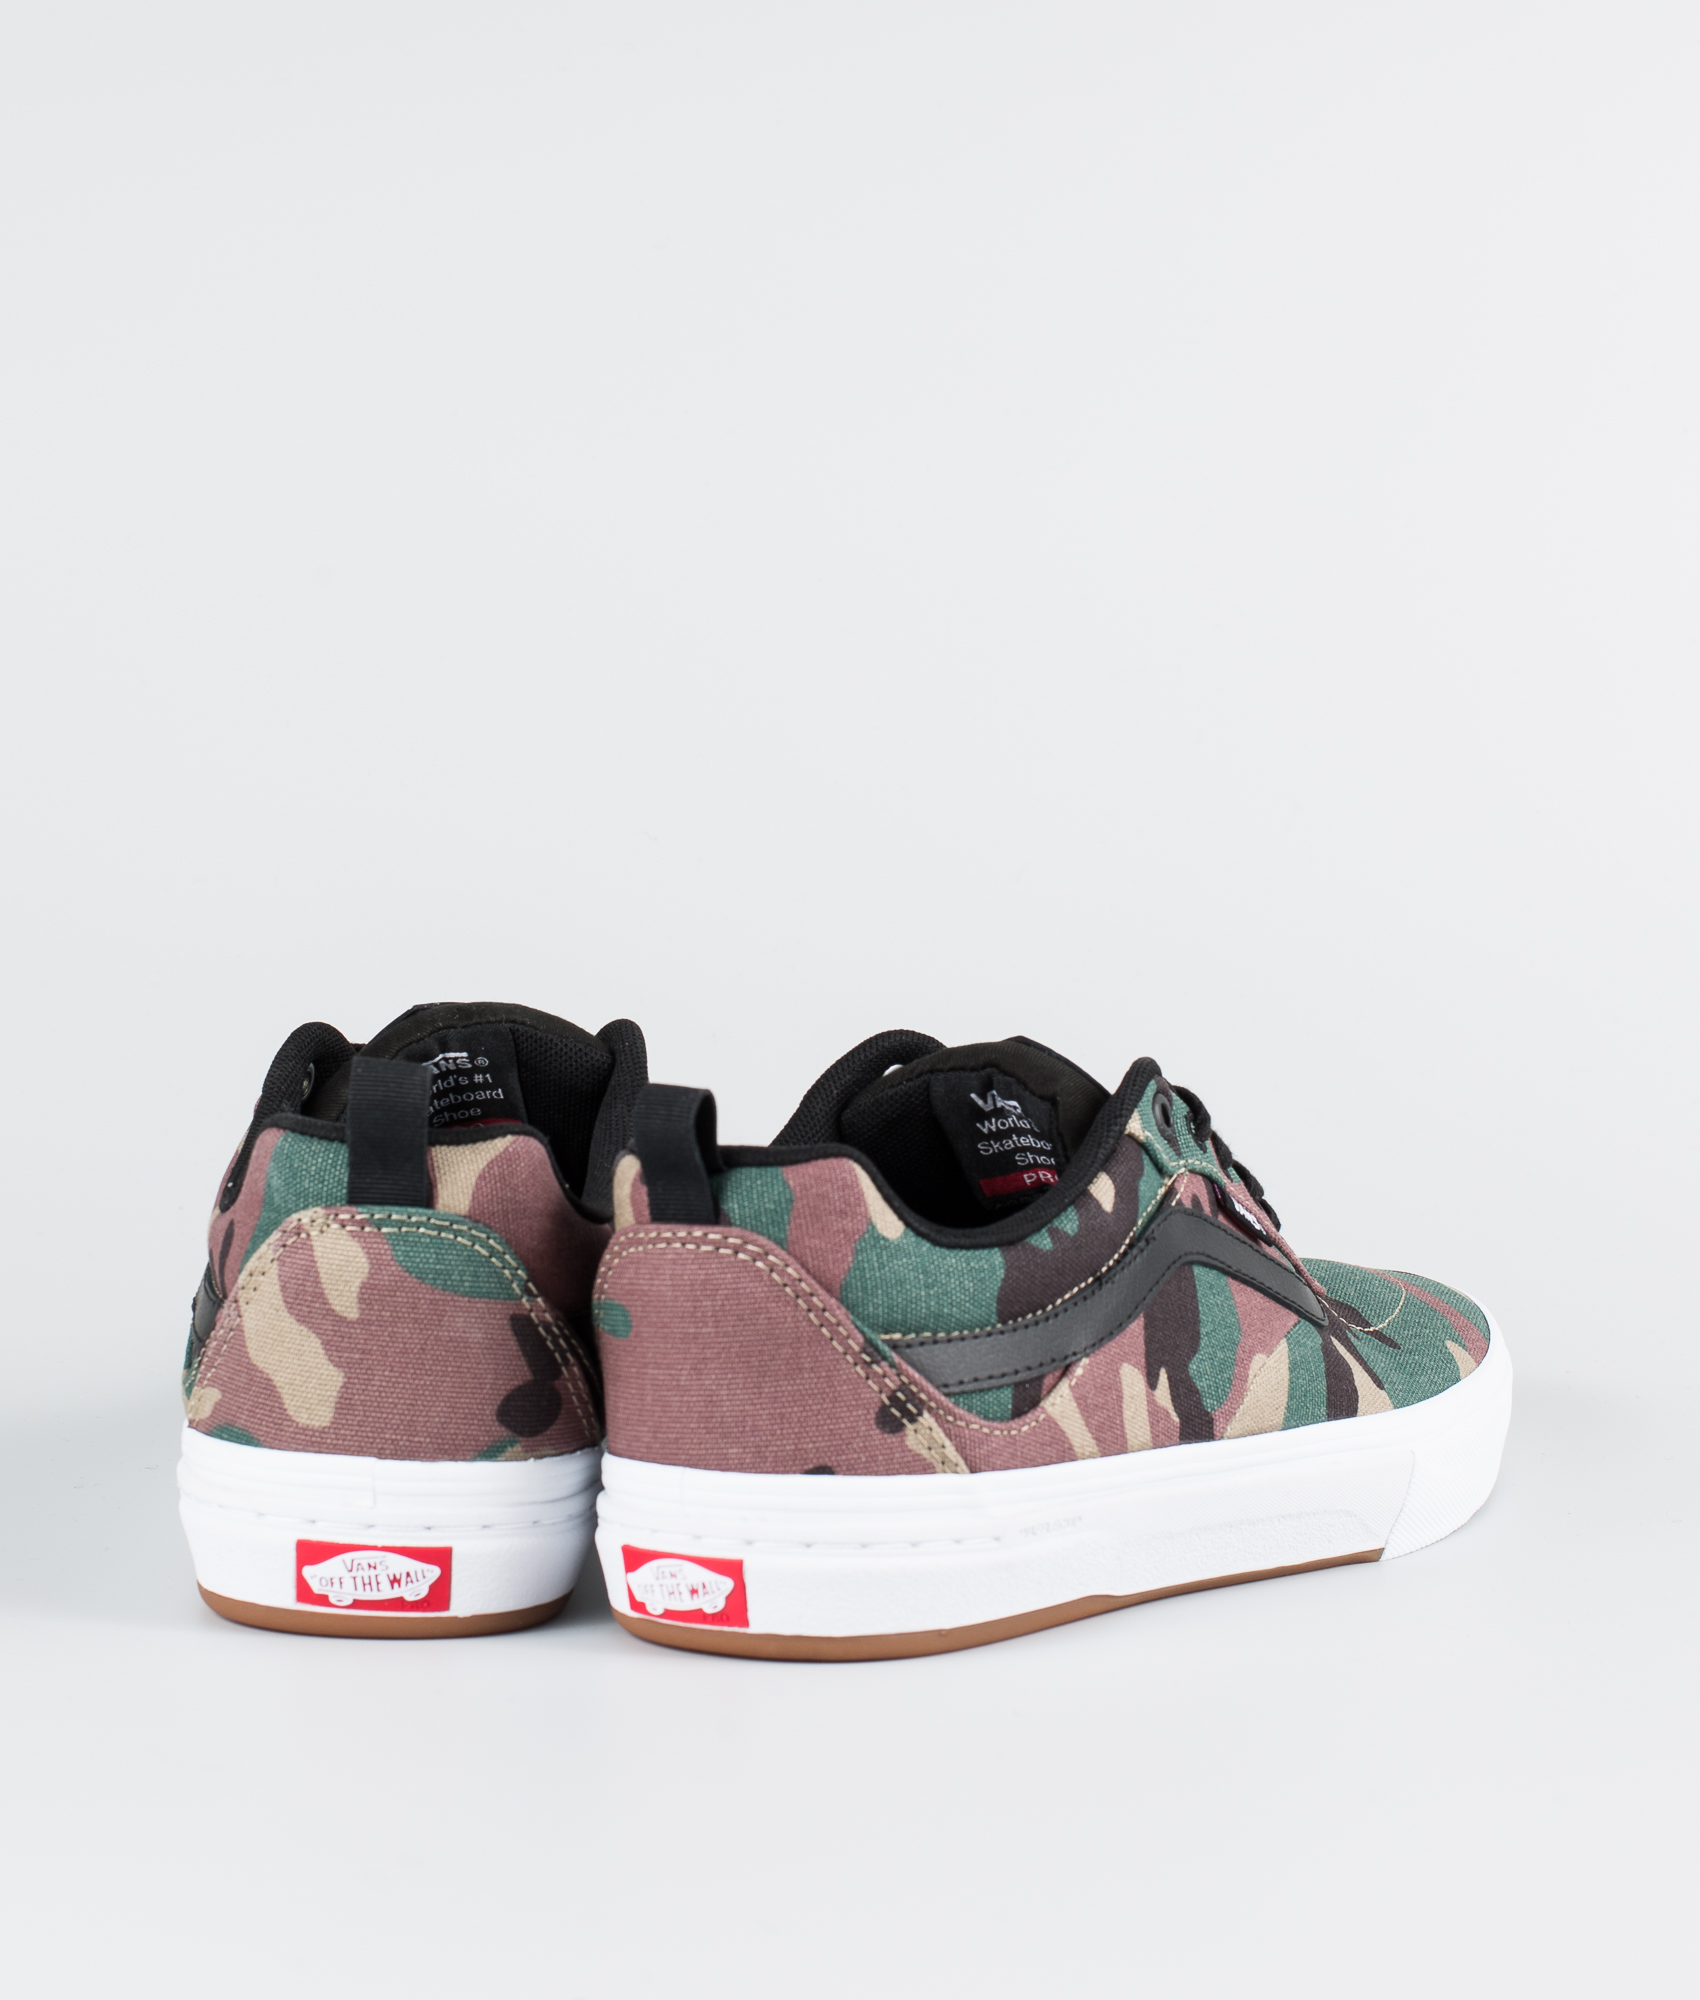 Vans Walker Shoes Kyle Blackwhite camo Pro 44wPx